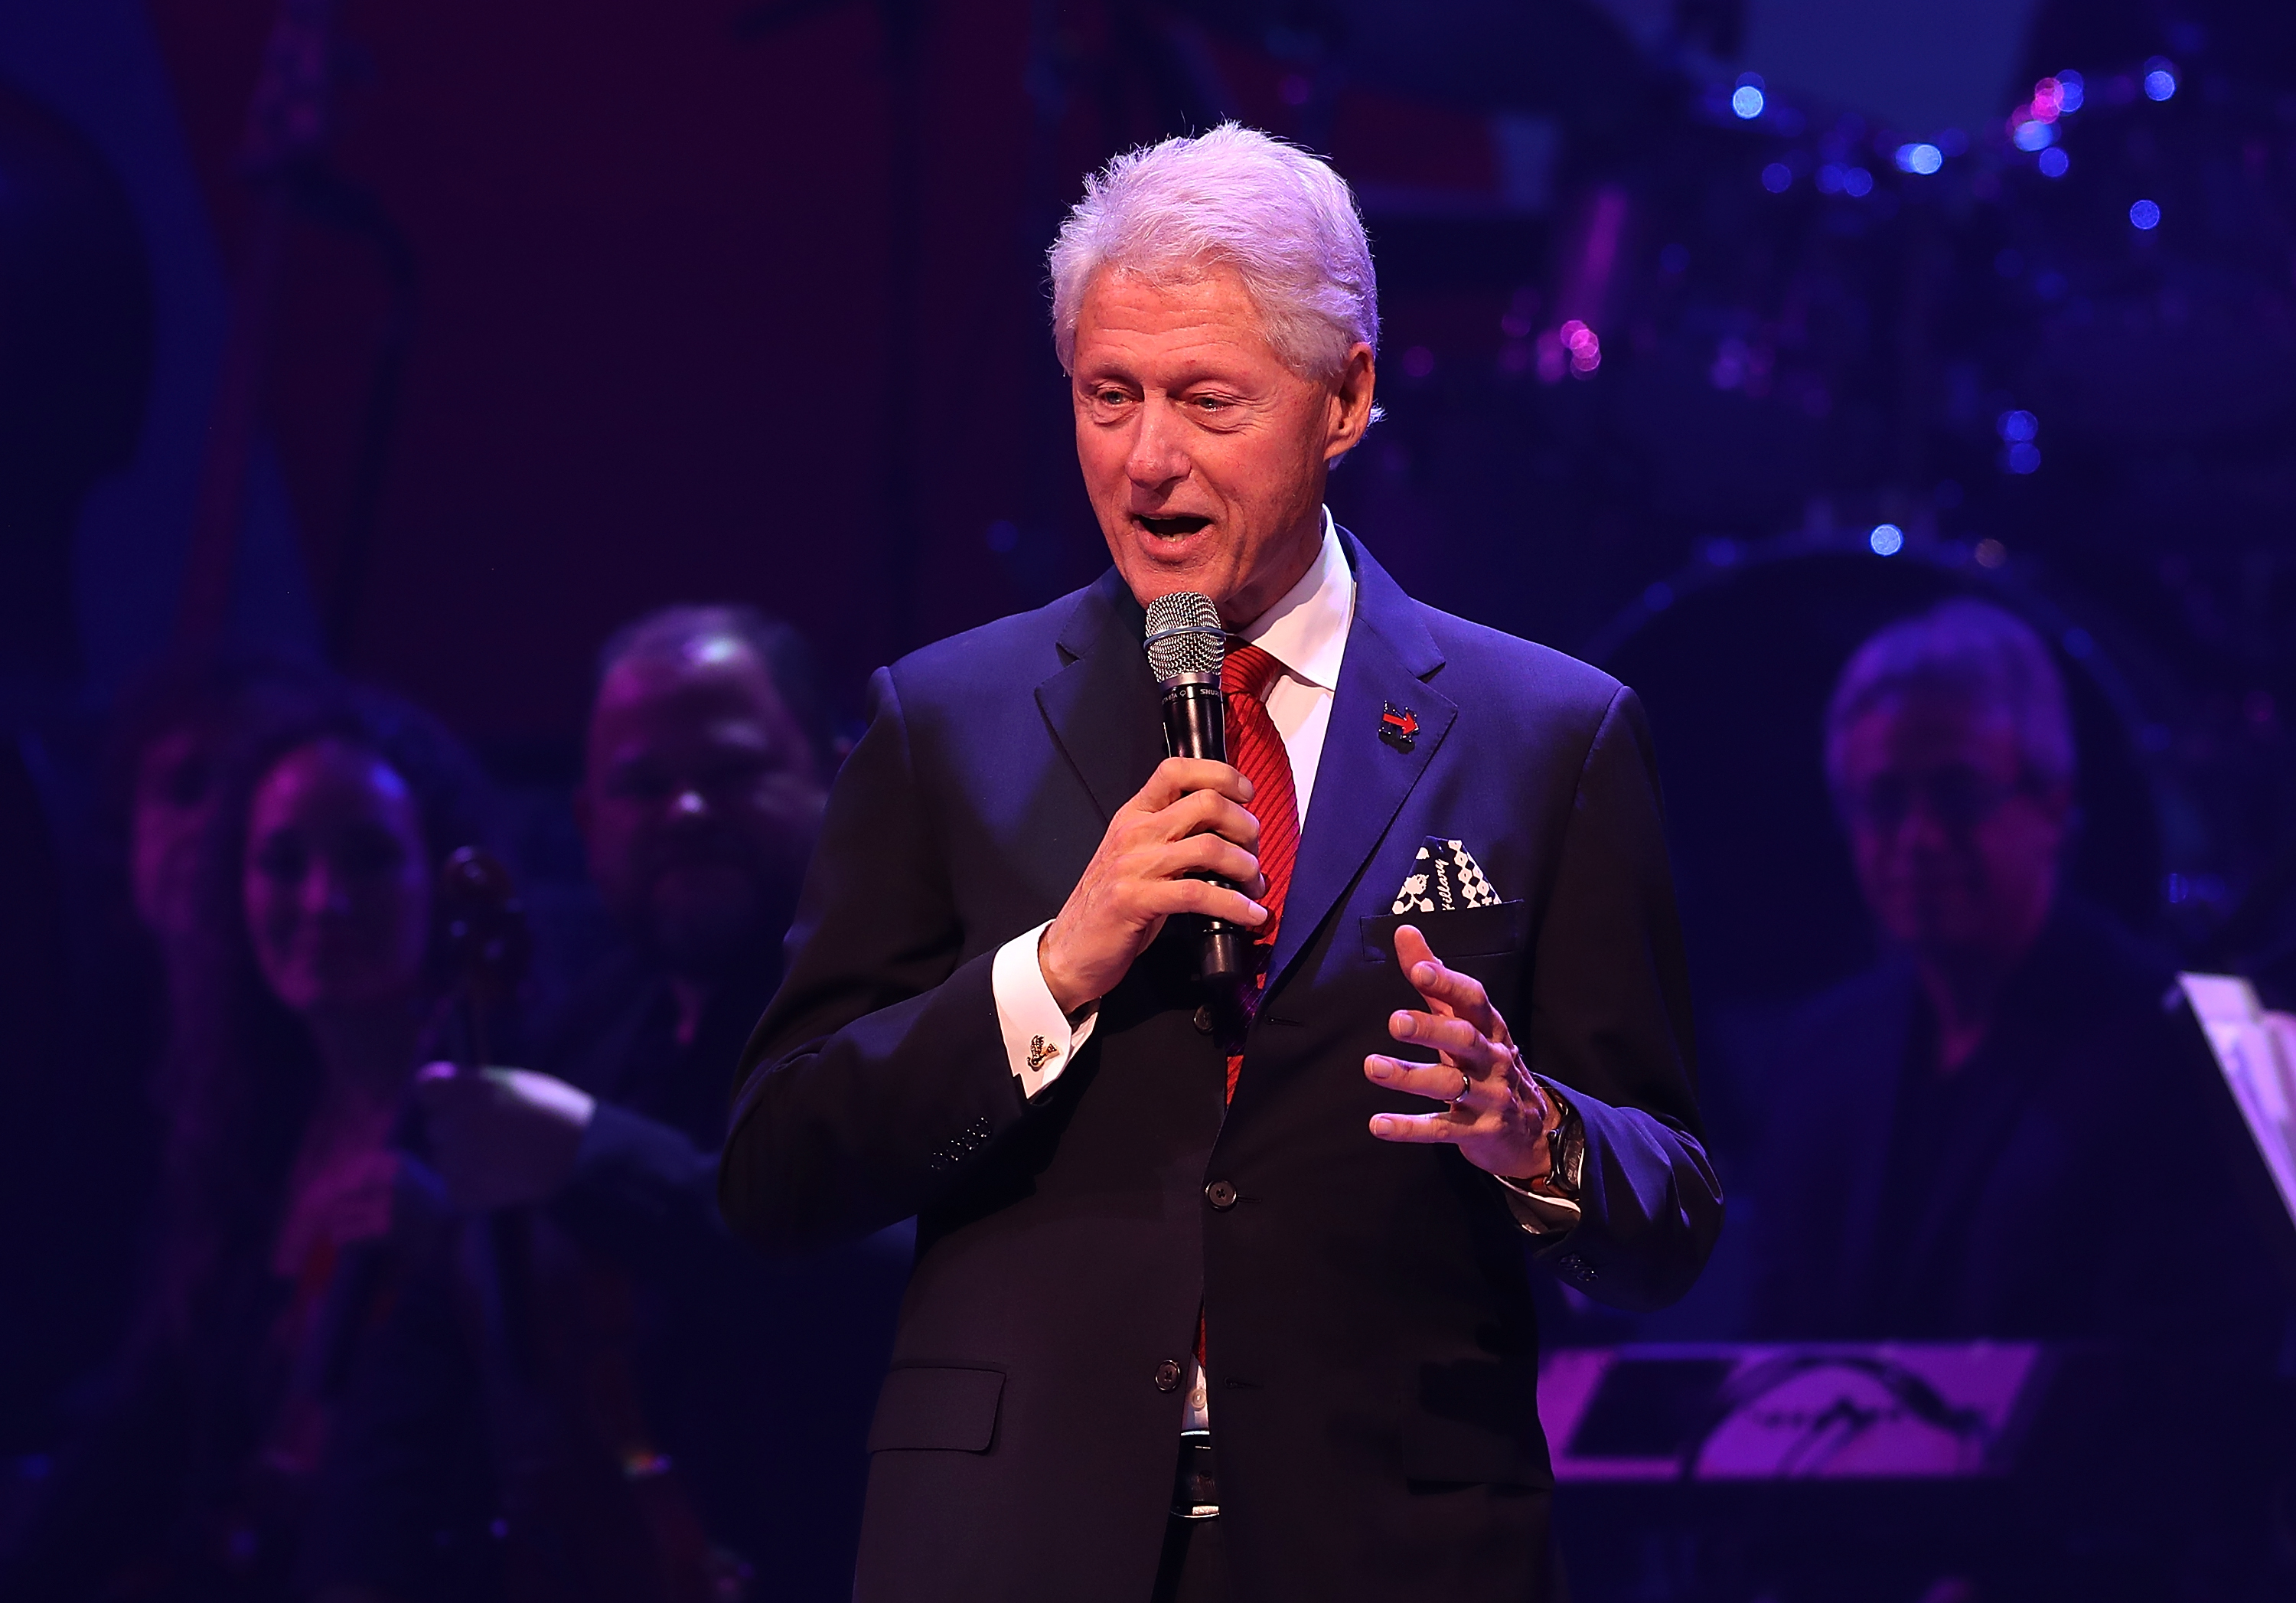 Fundraiser Event Held For Hillary Clinton's Presidential Campaign In Manhattan